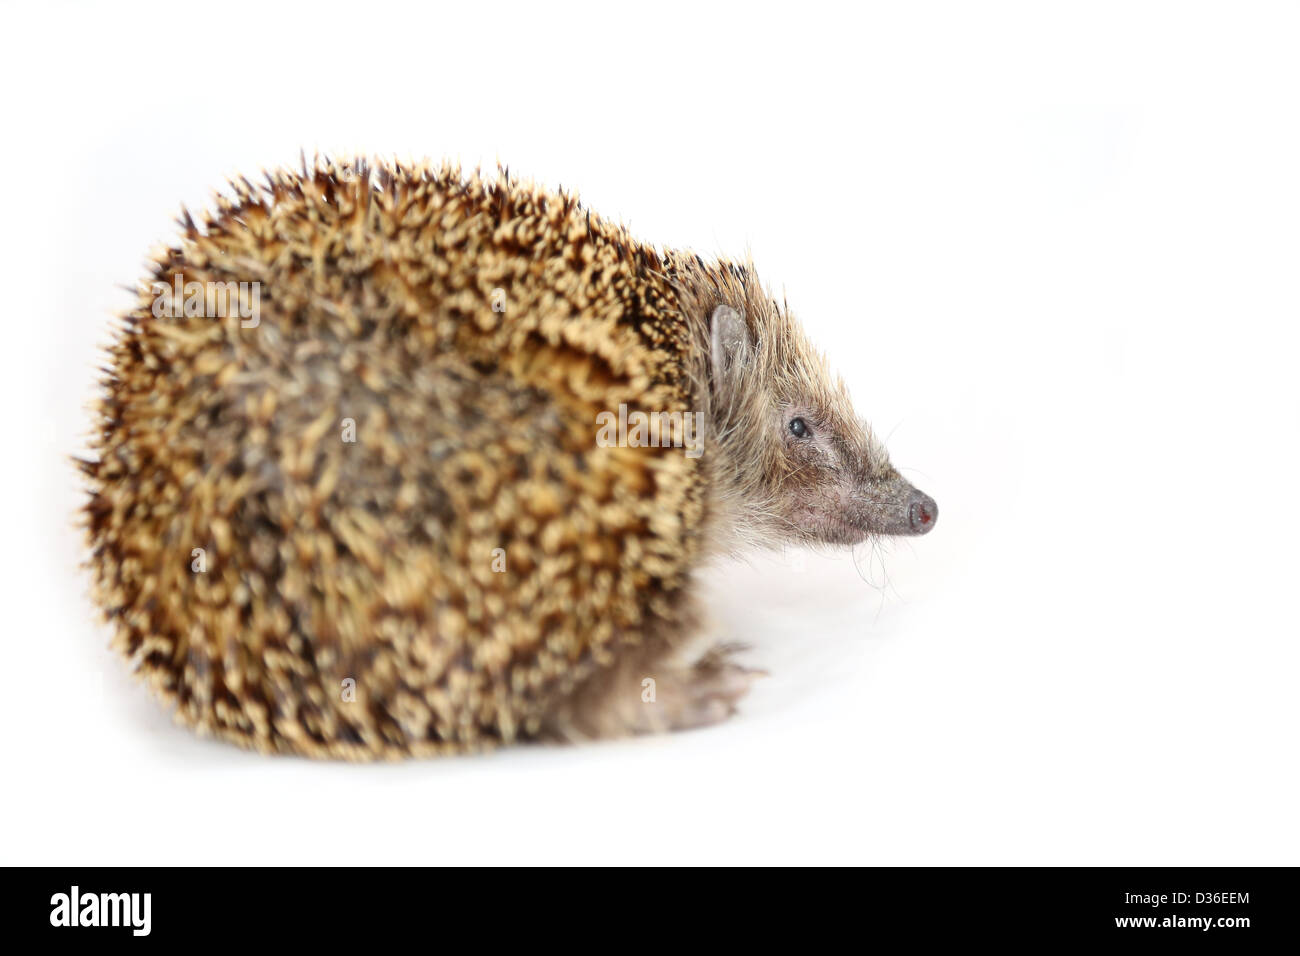 Huffish hedgehog turning his back on viewer - Stock Image